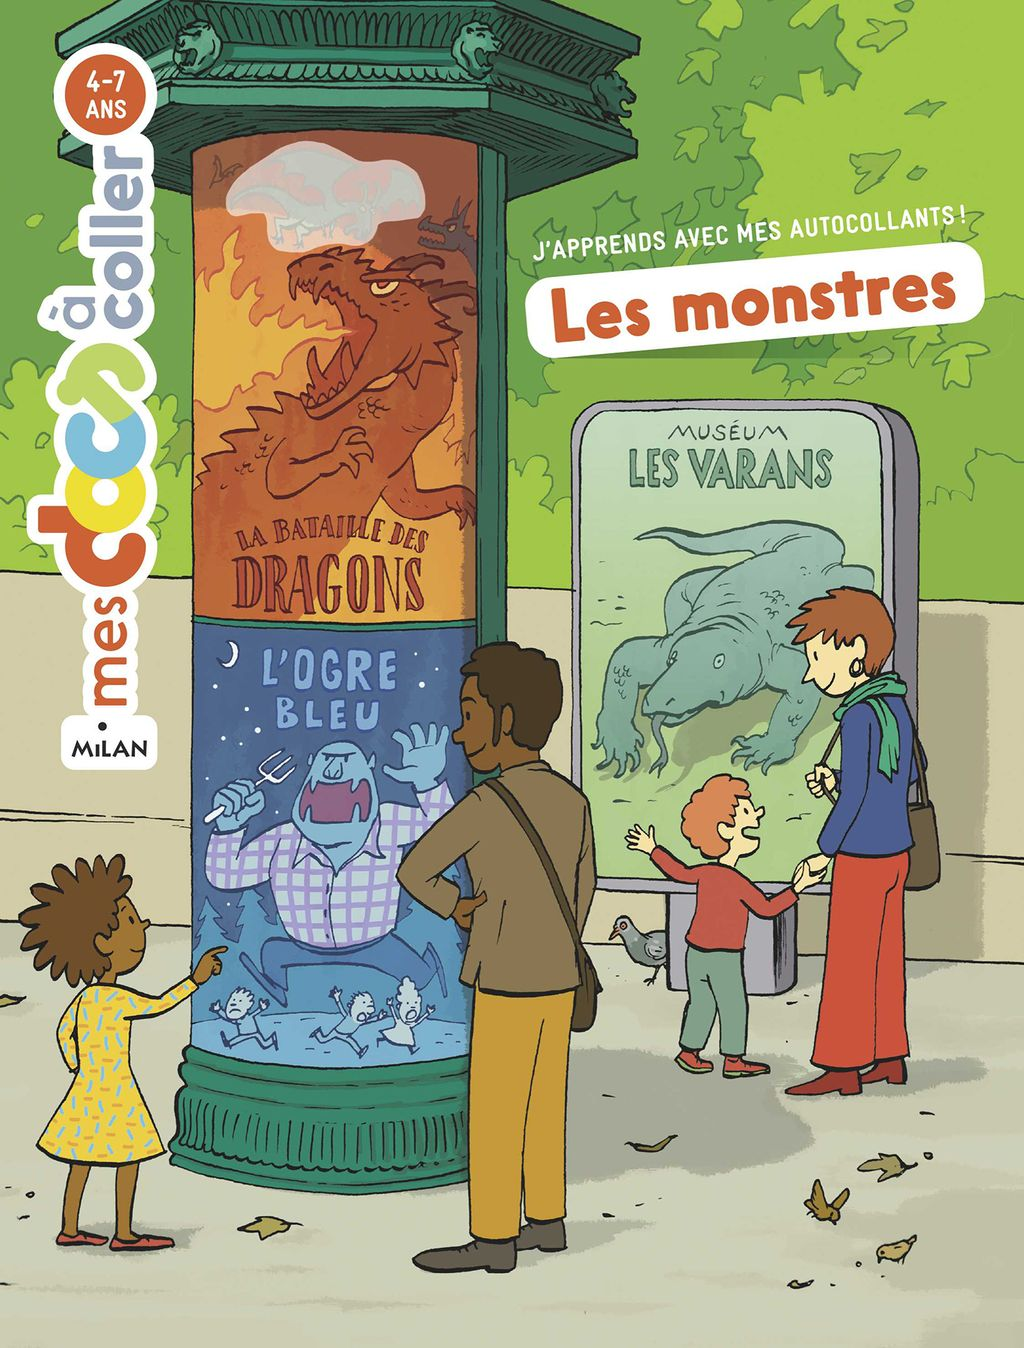 «Les monstres» cover